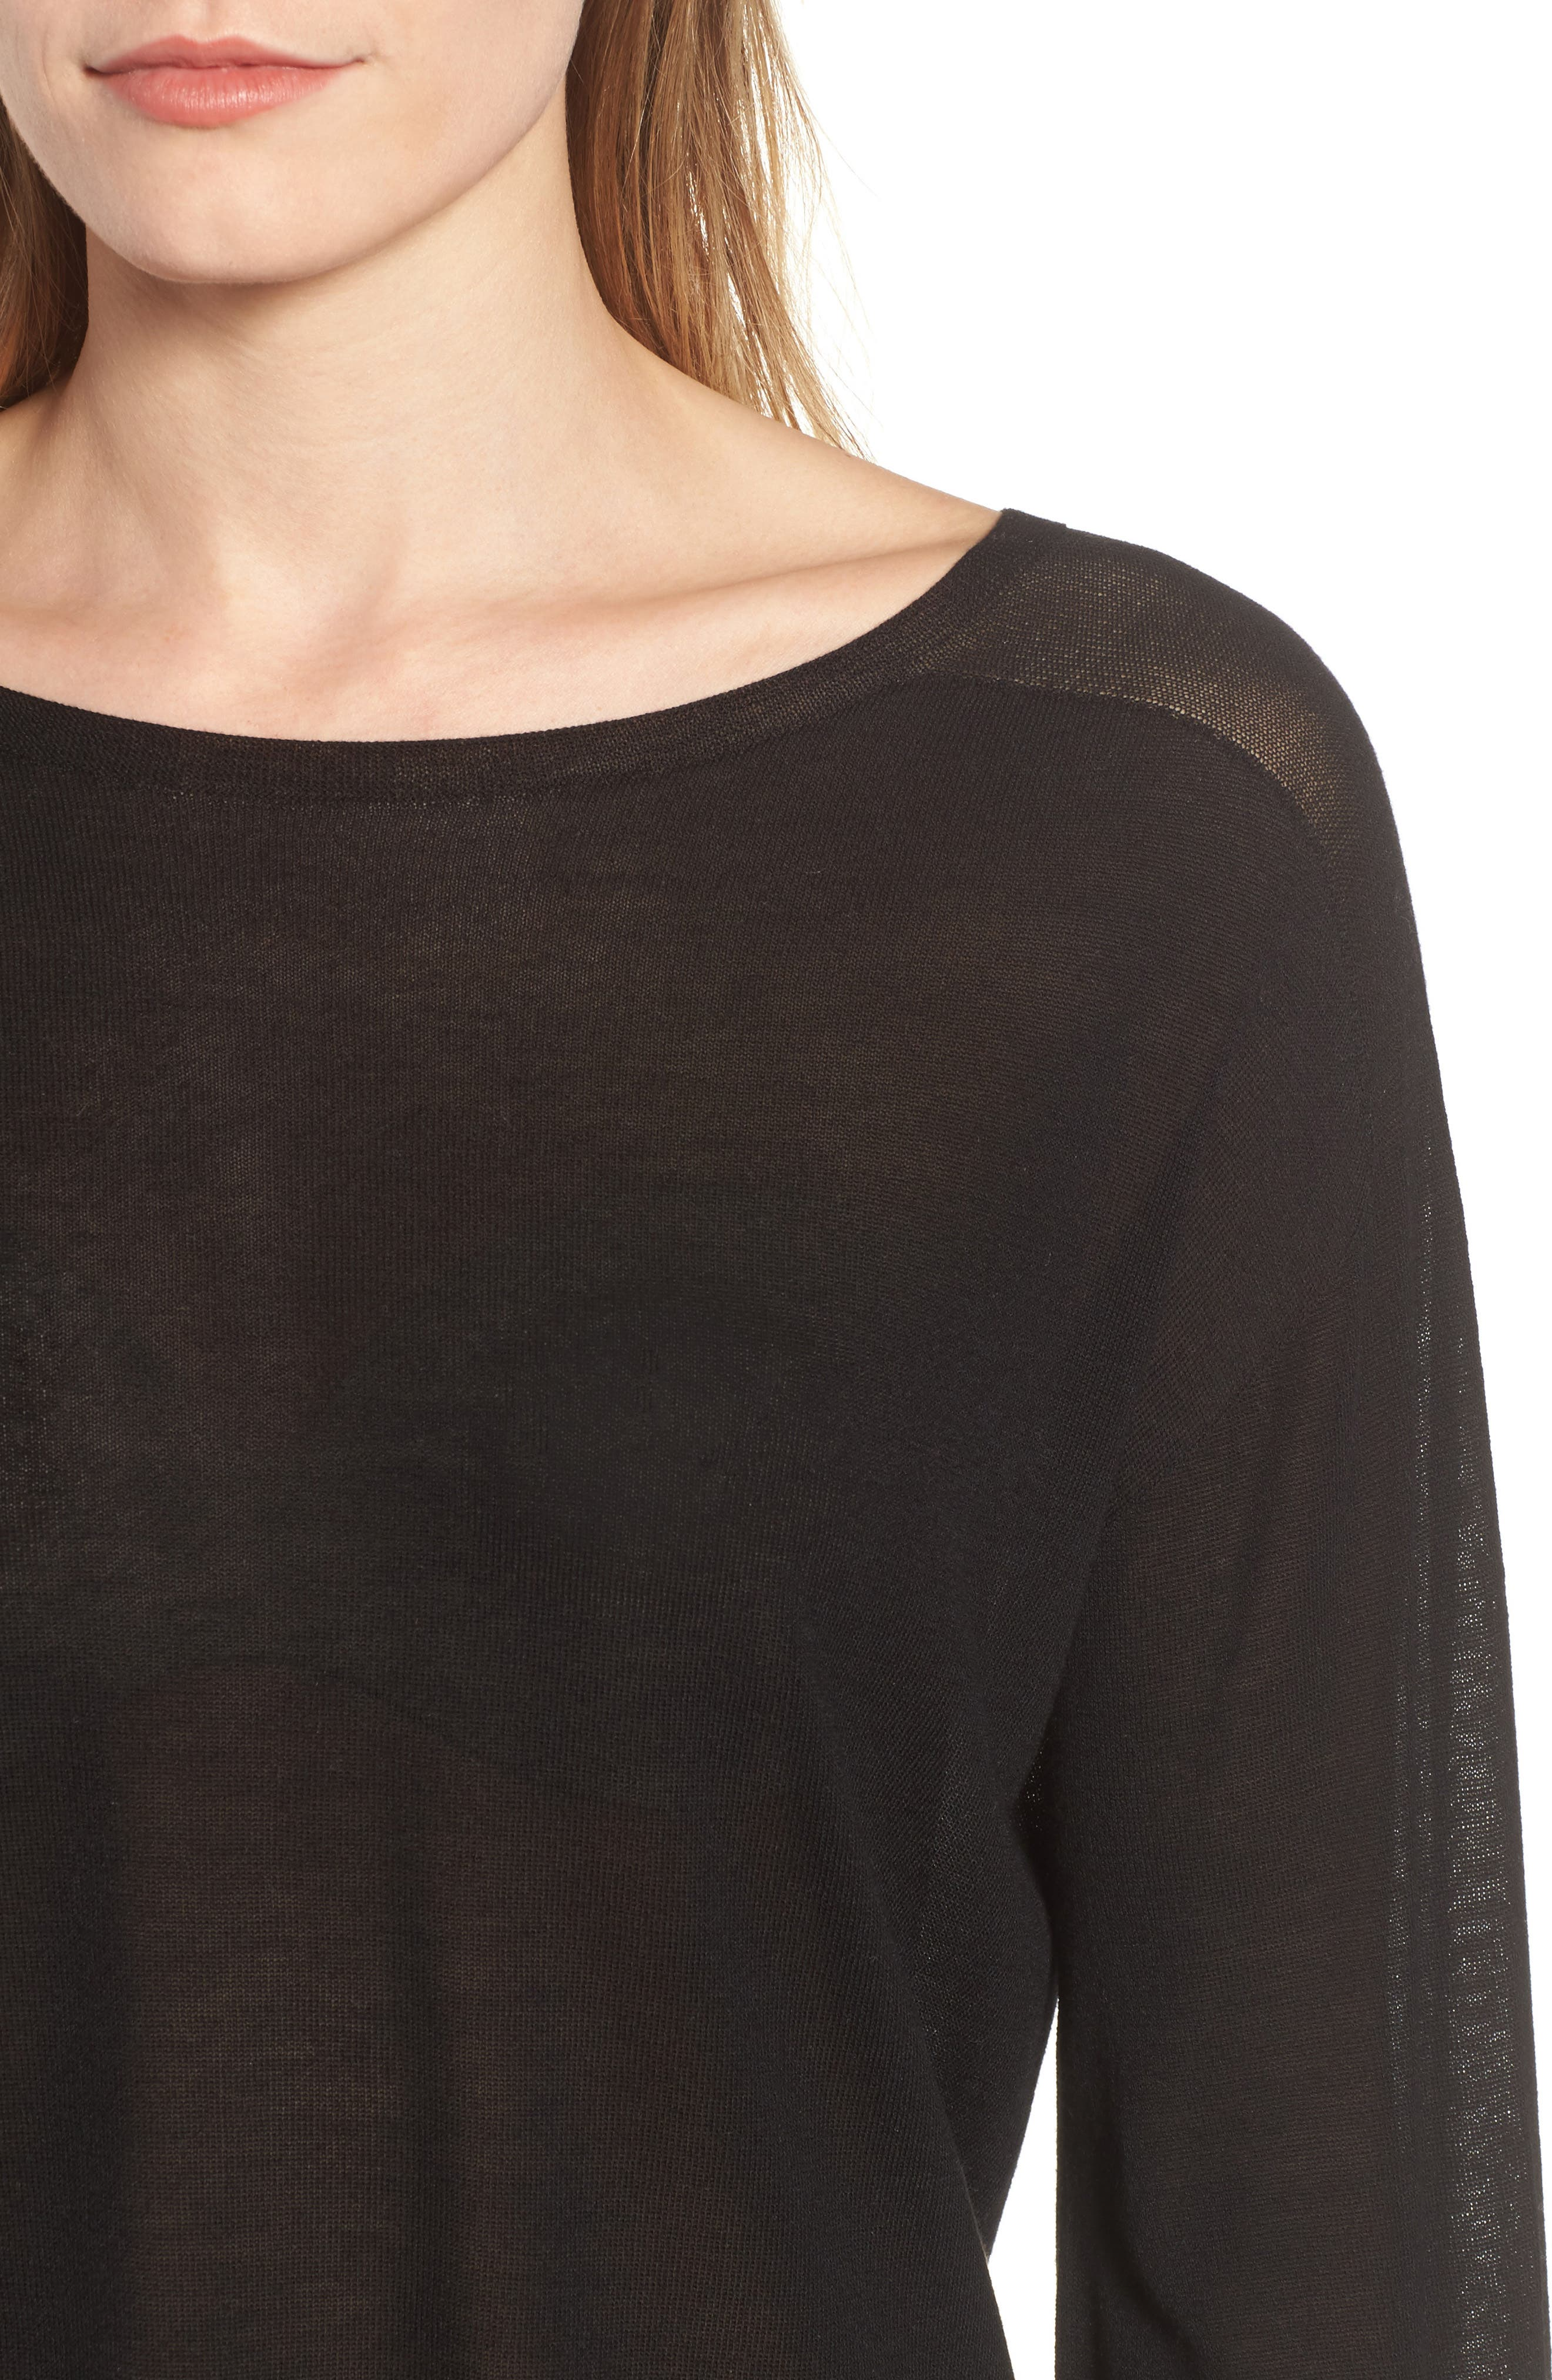 Tencel<sup>®</sup> Lyocell Knit Sweater,                             Alternate thumbnail 4, color,                             001